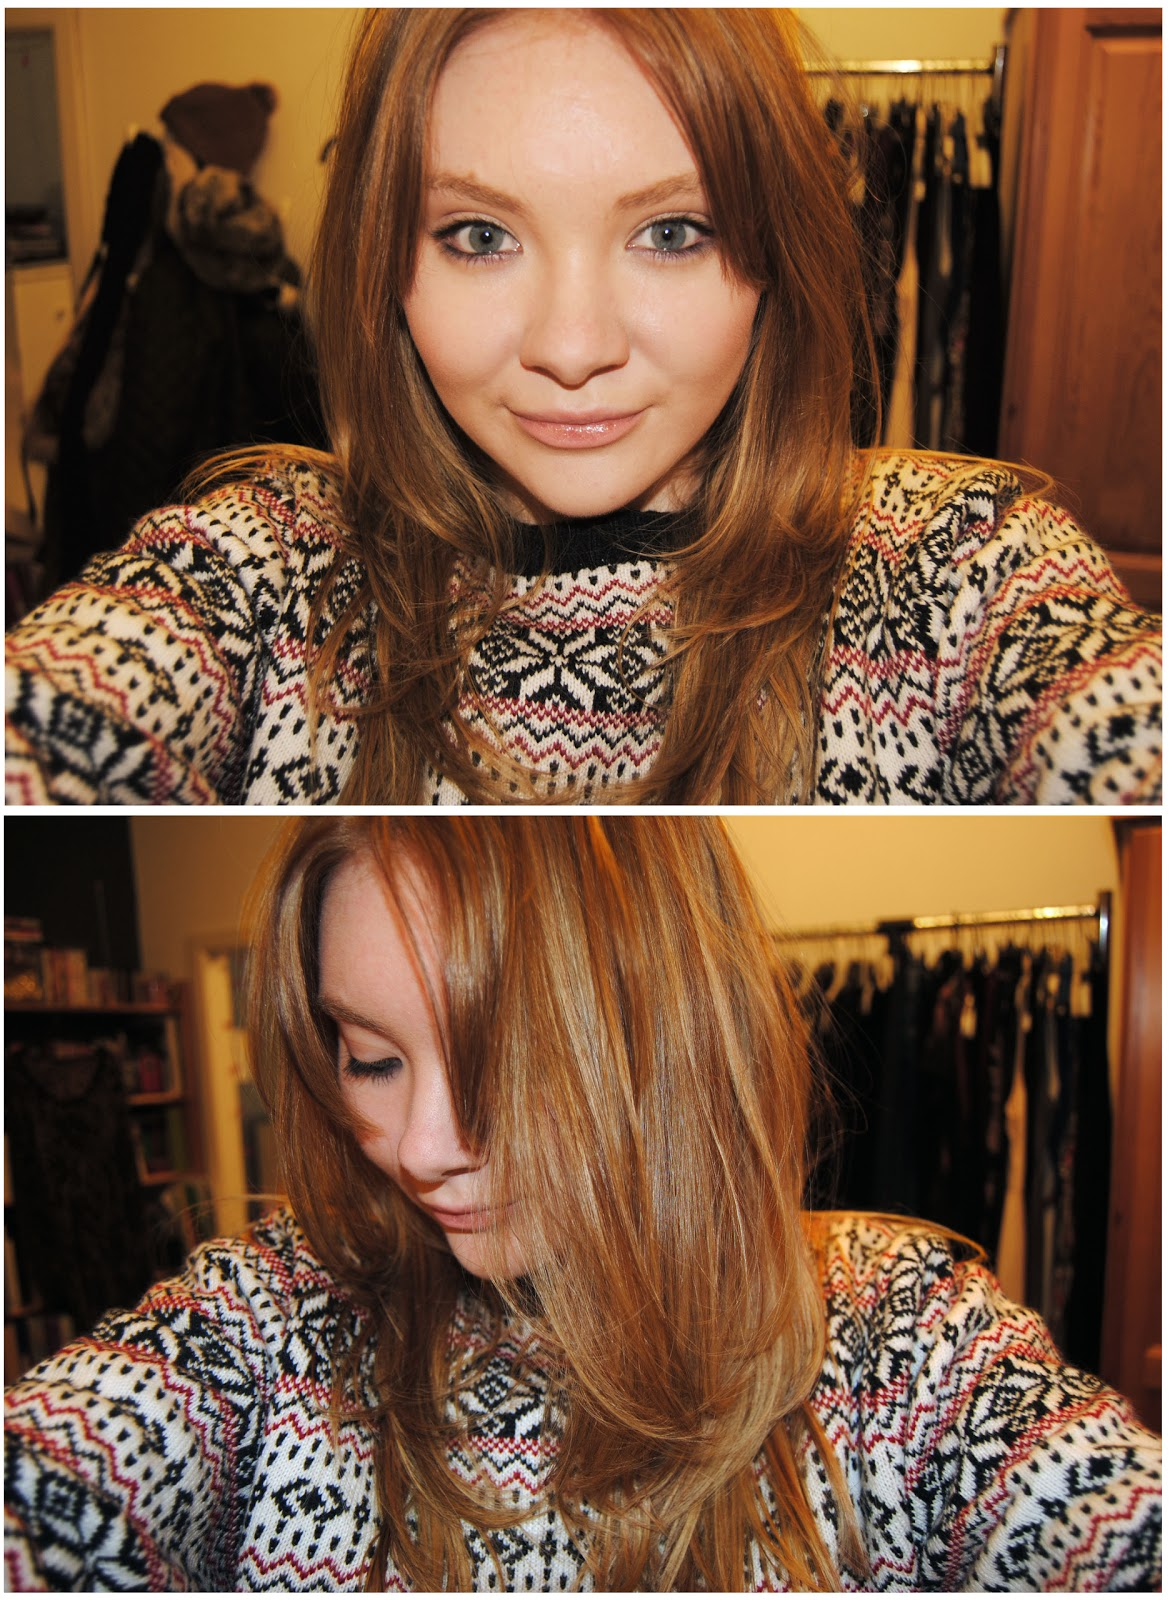 decided to go for it and get my hair dyed a darker blonde